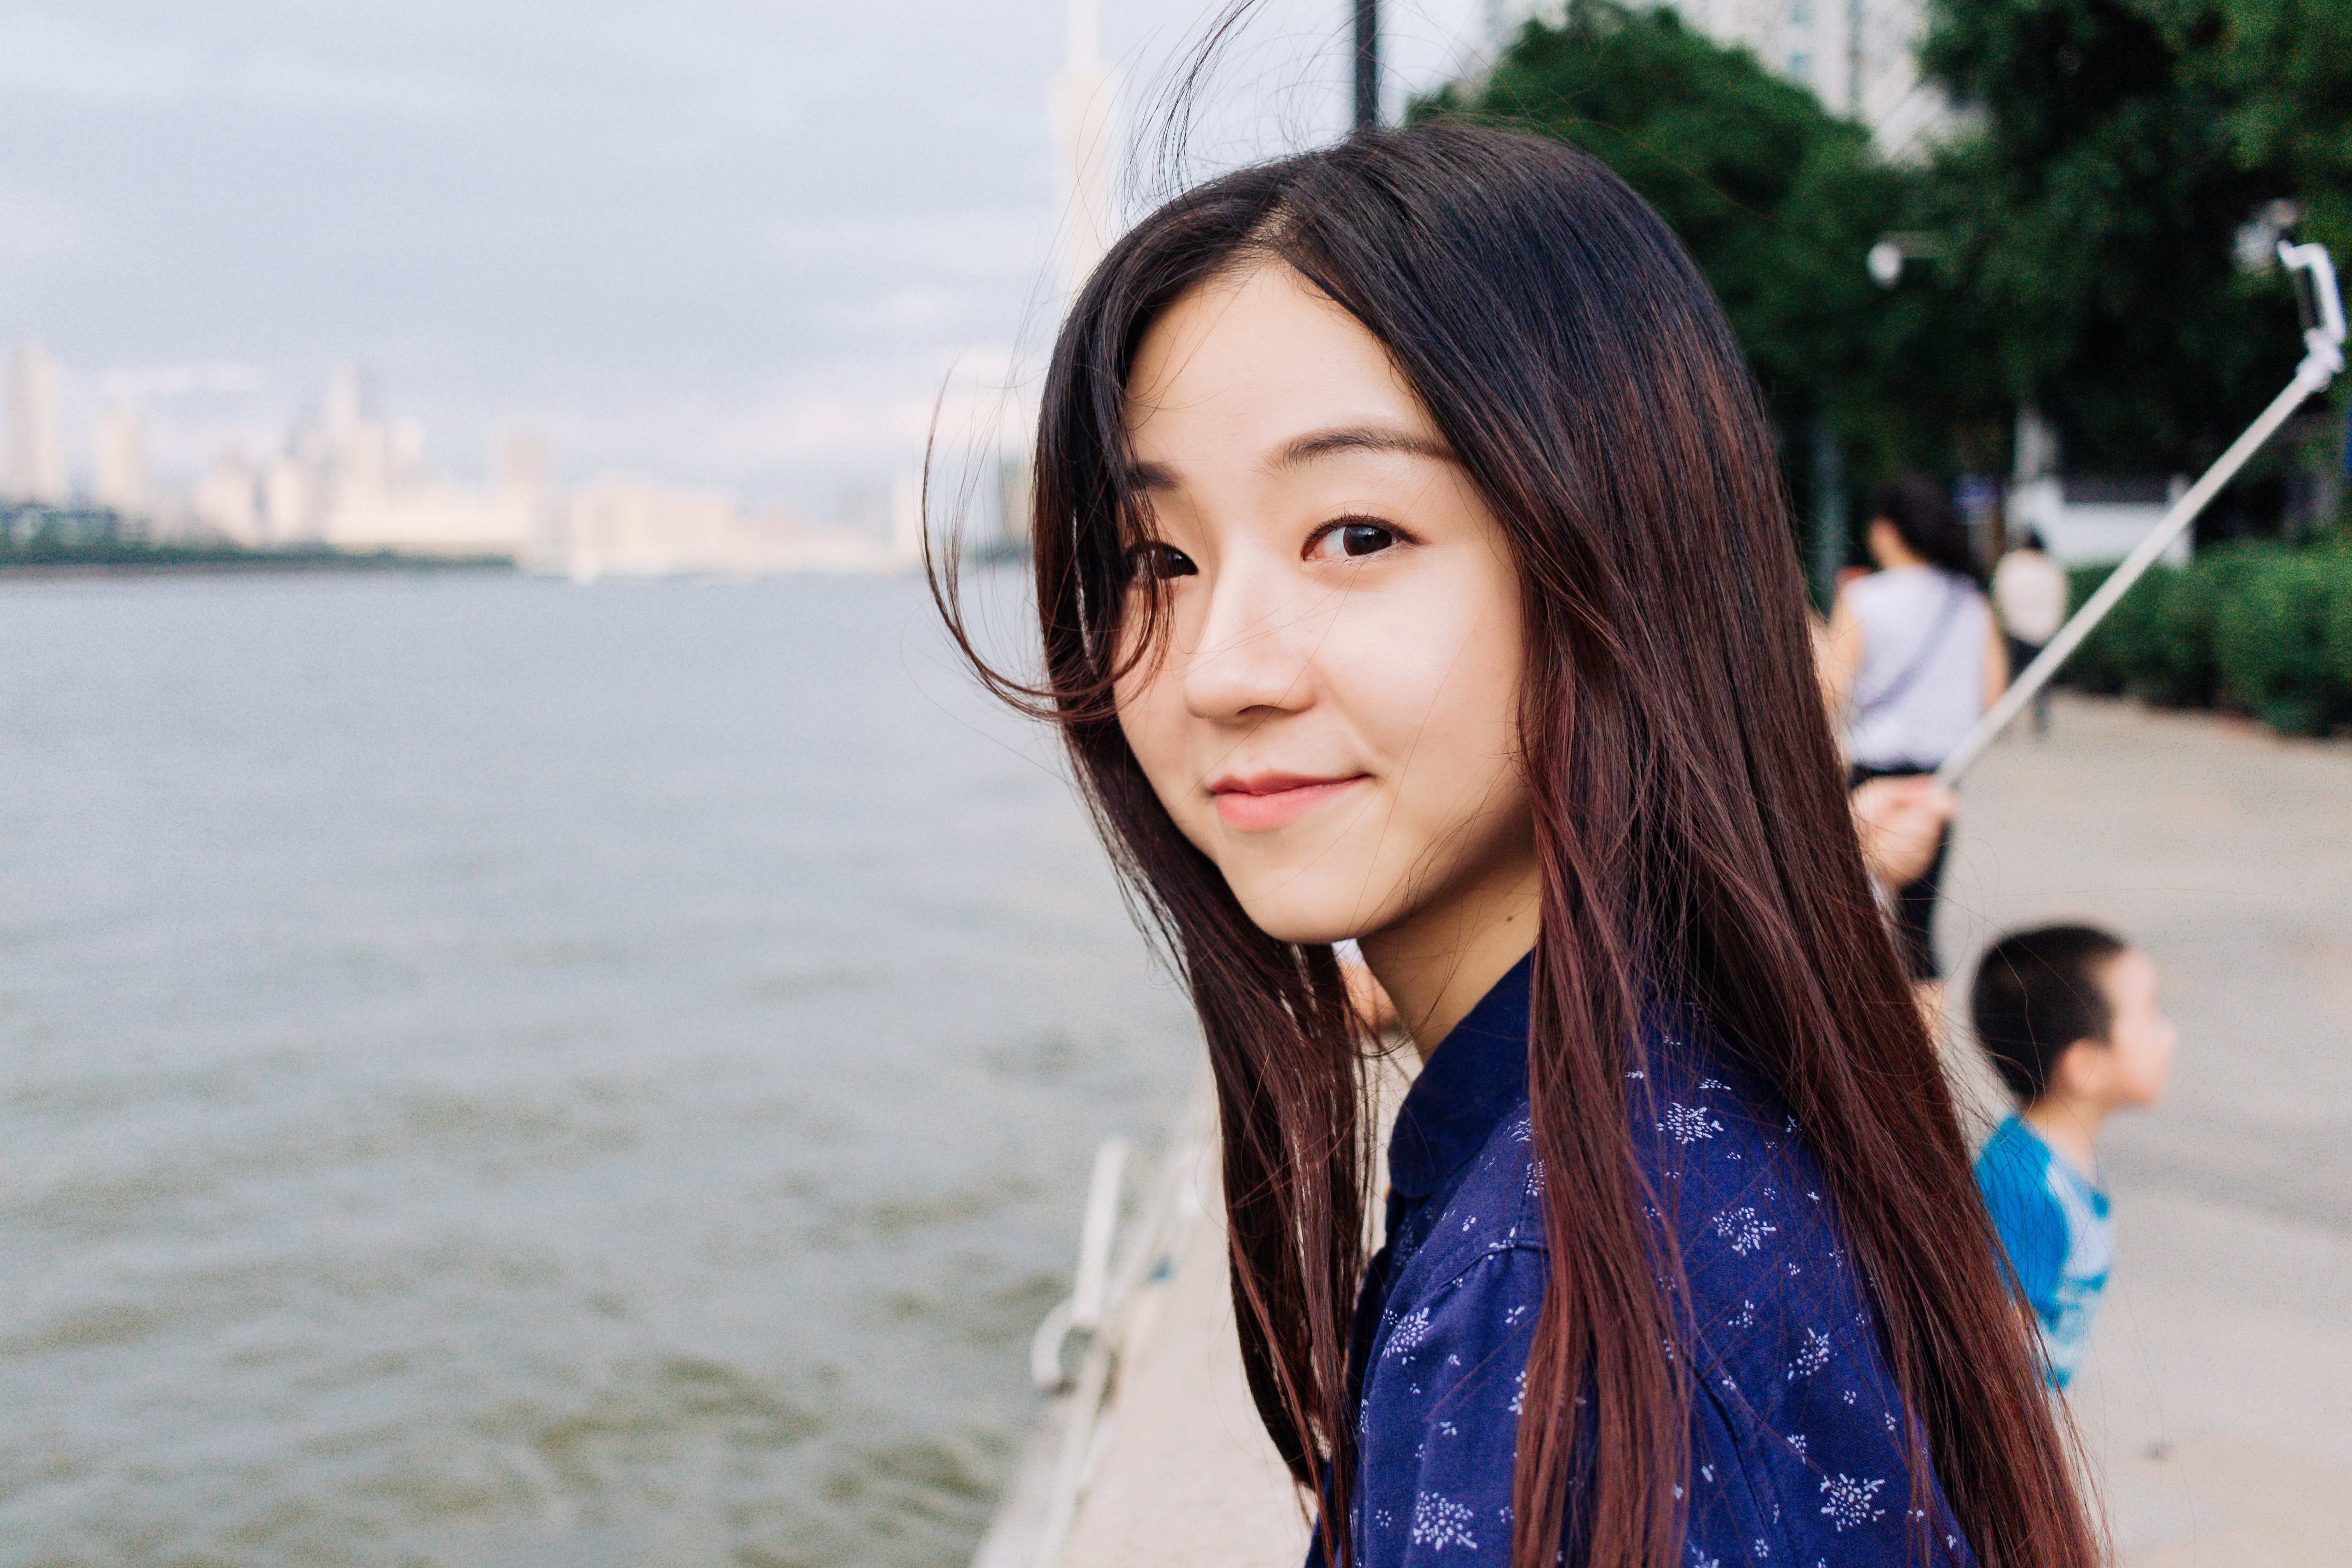 Asian People Pictures Download Free Images On Unsplash